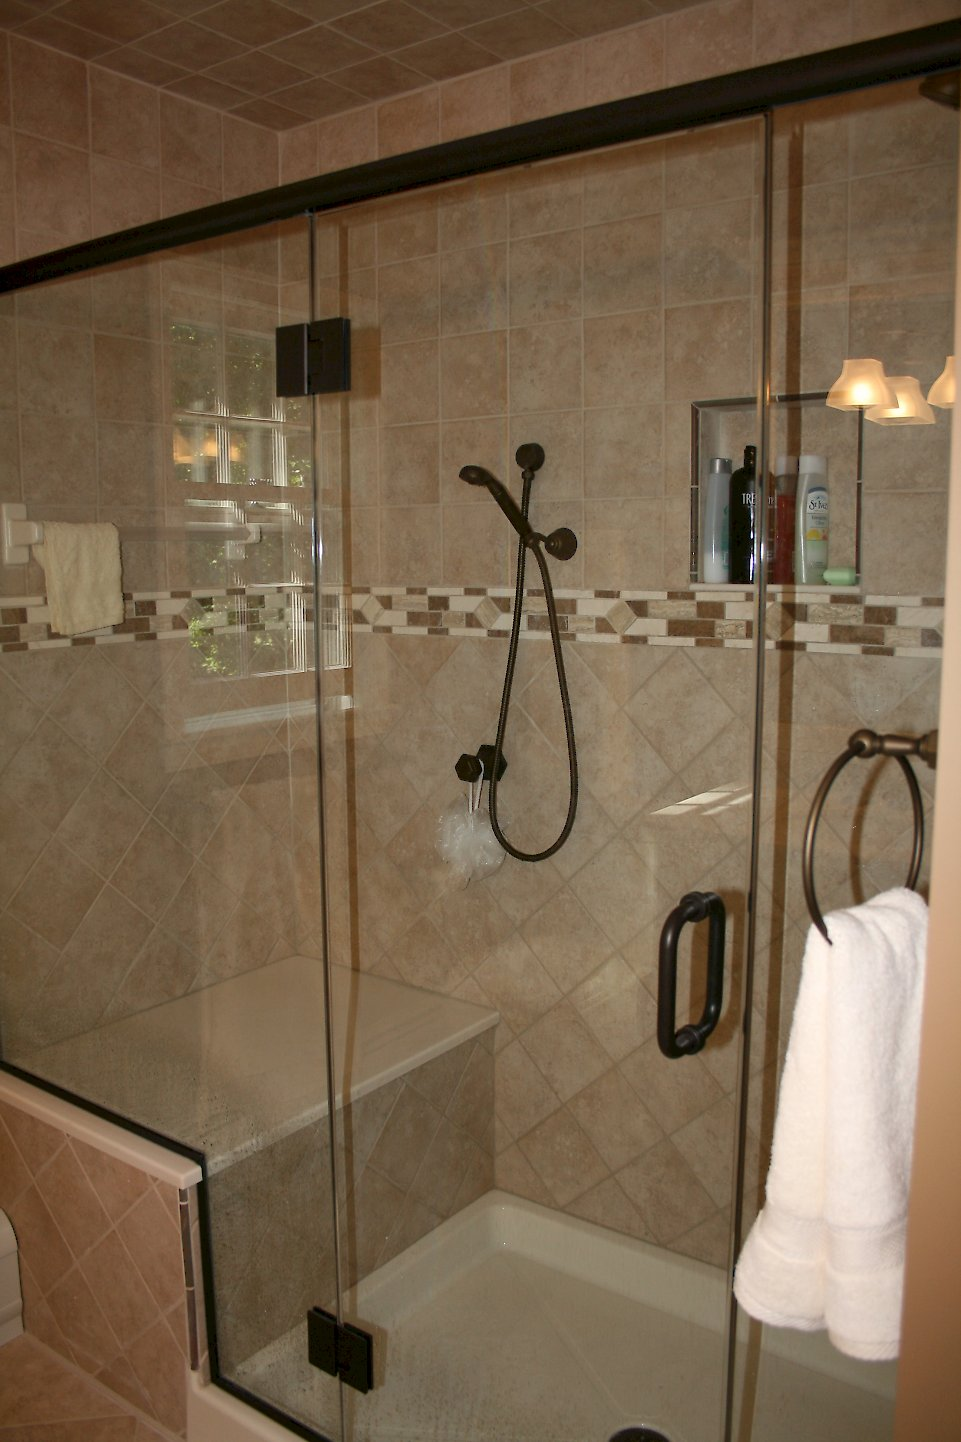 Century Shower doors with Oil rubbed bronze finsh.